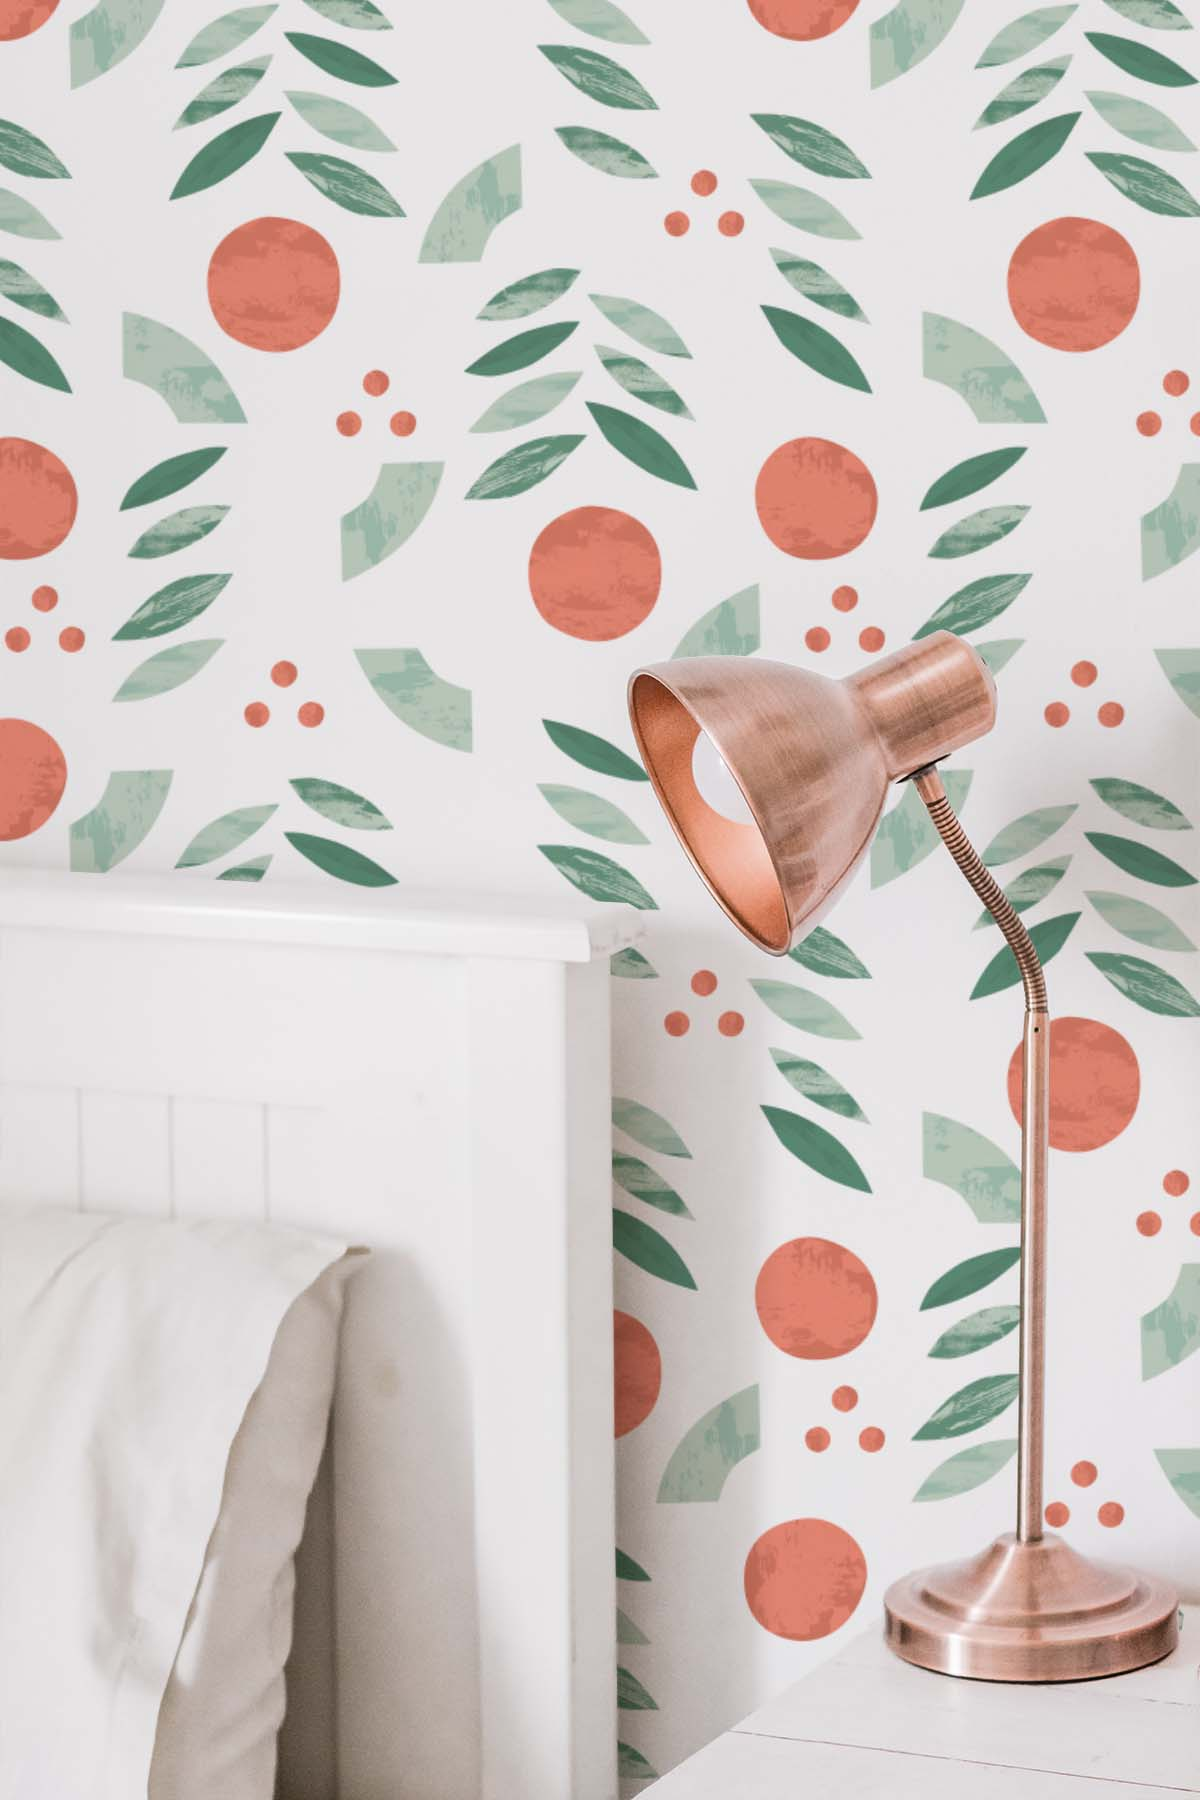 Merry + Bright Abstract Wallpaper - A playful wall makeover solution for any space. Each wallpaper is easy to apply and fully removable, making them perfect for renters, dorms, or an easy change in decor!